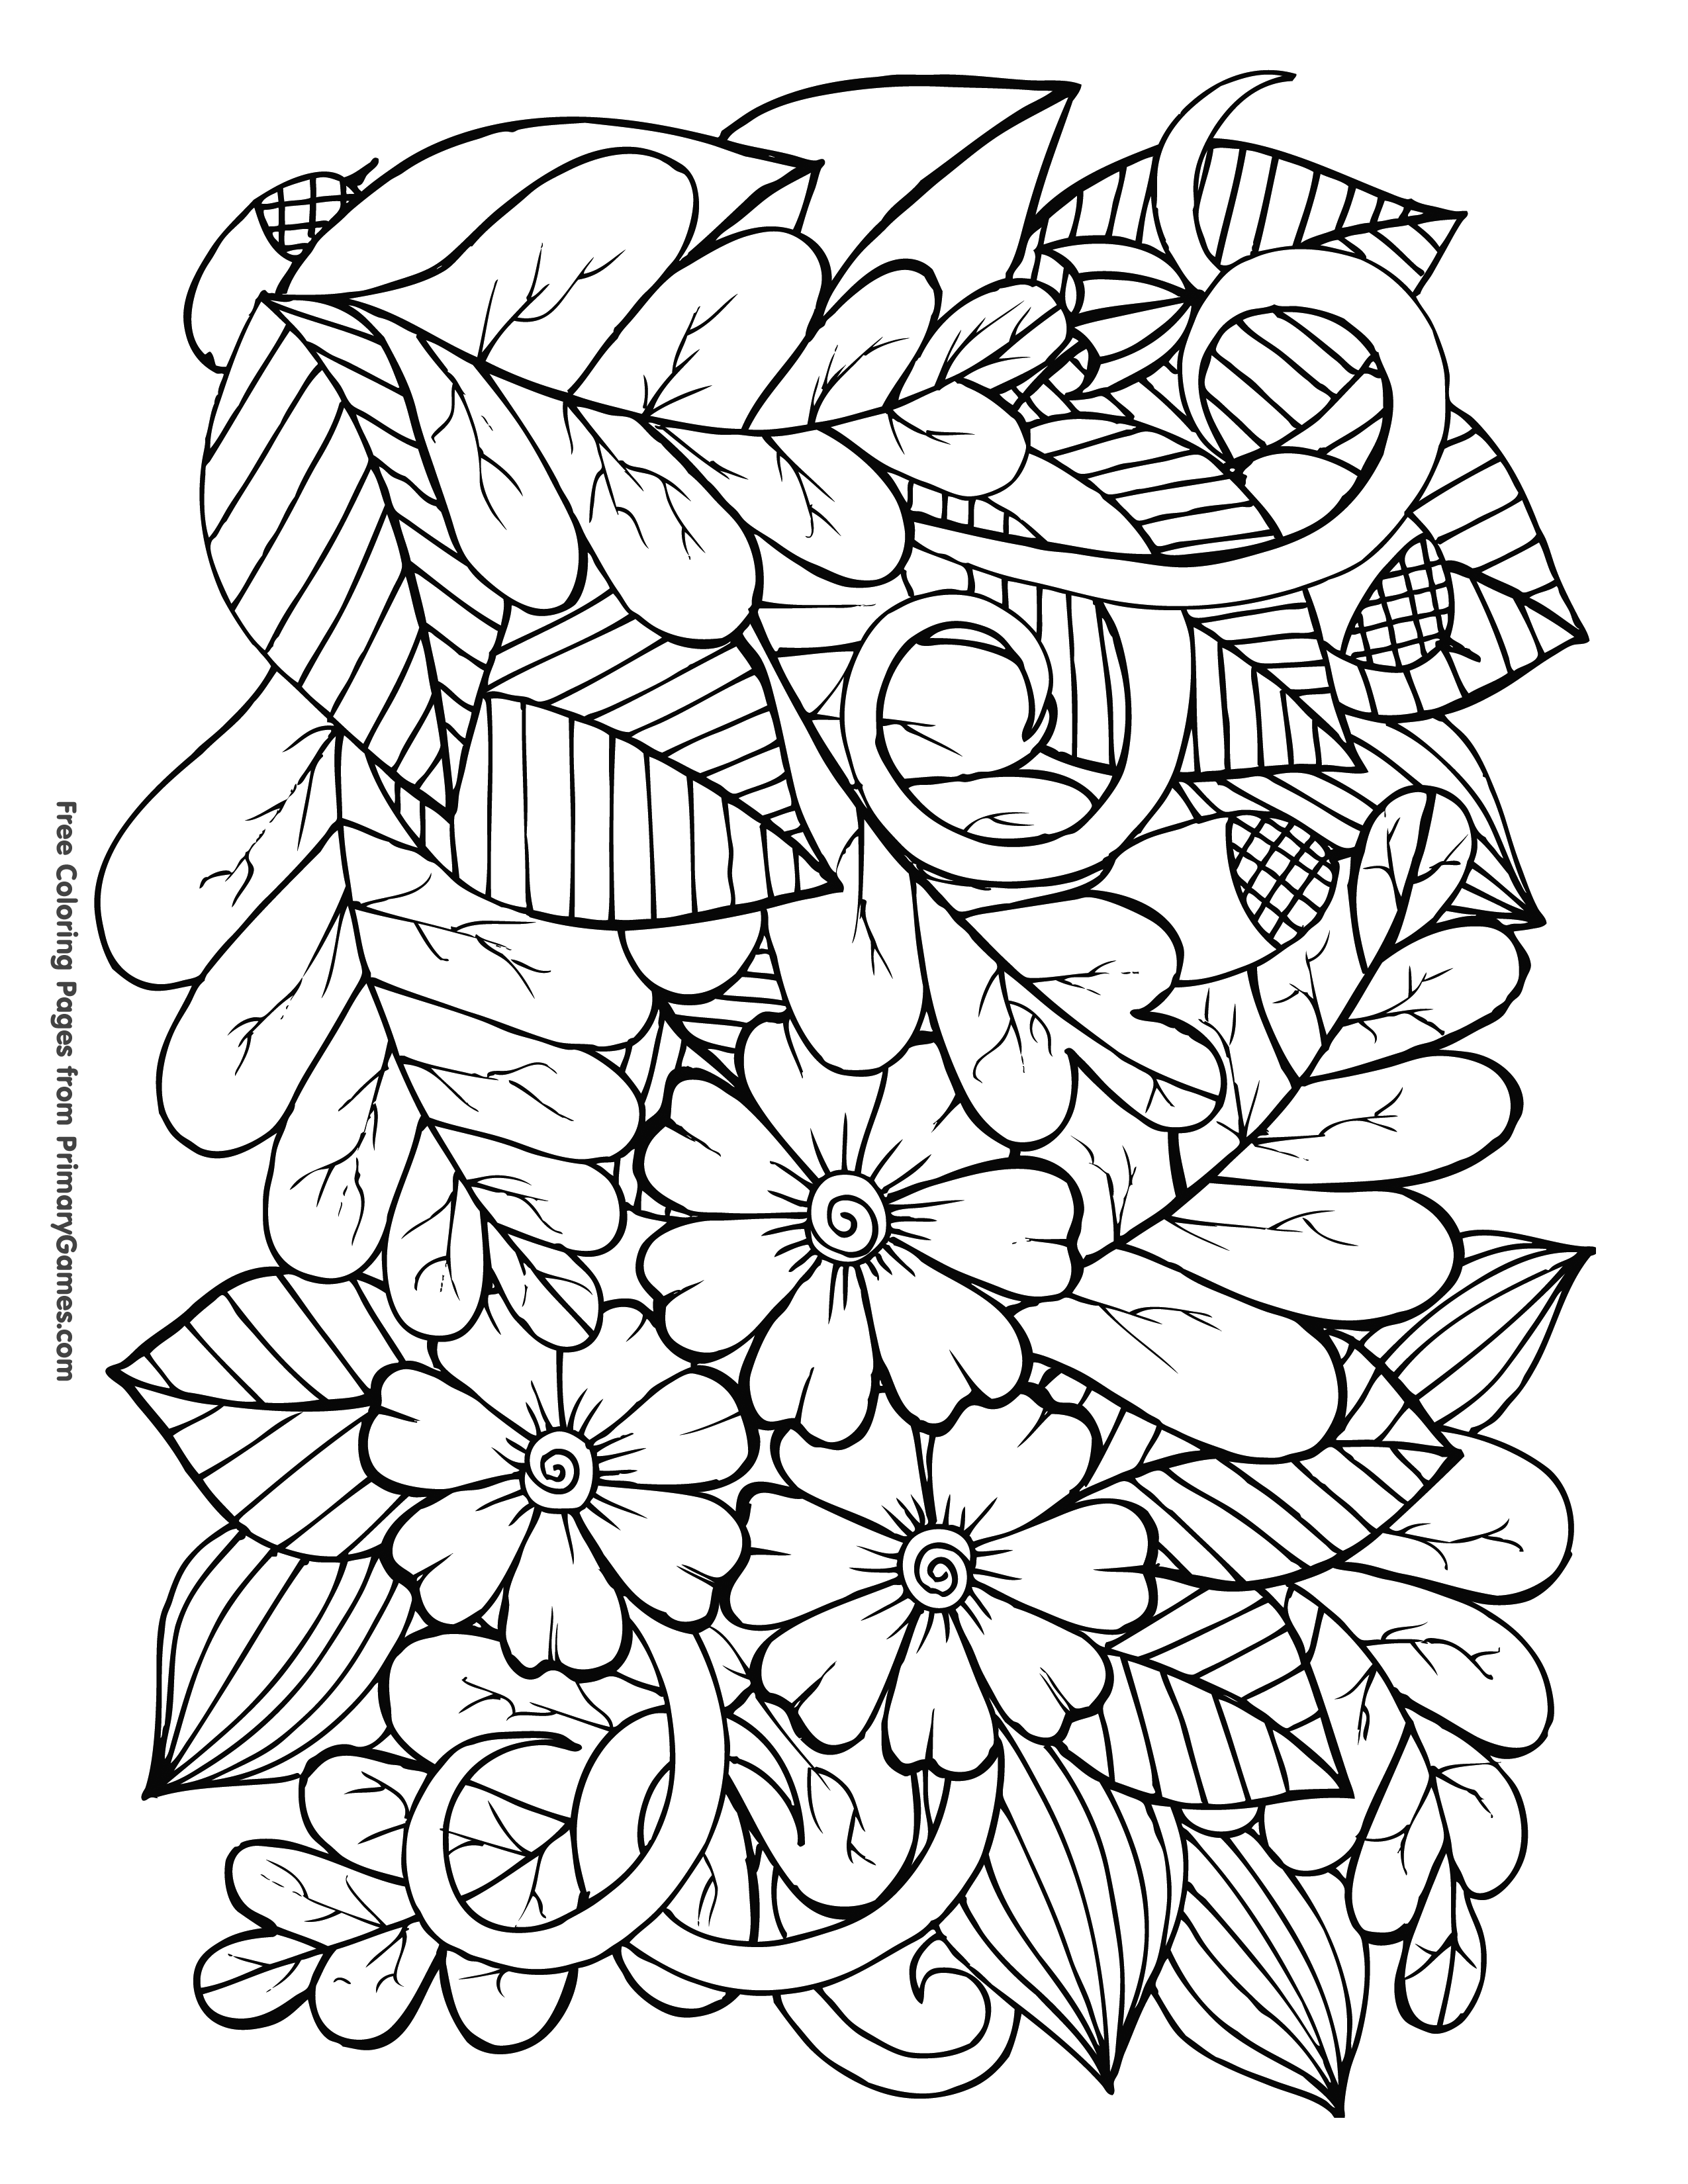 Leaves And Acorns Coloring Page Free Printable Ebook